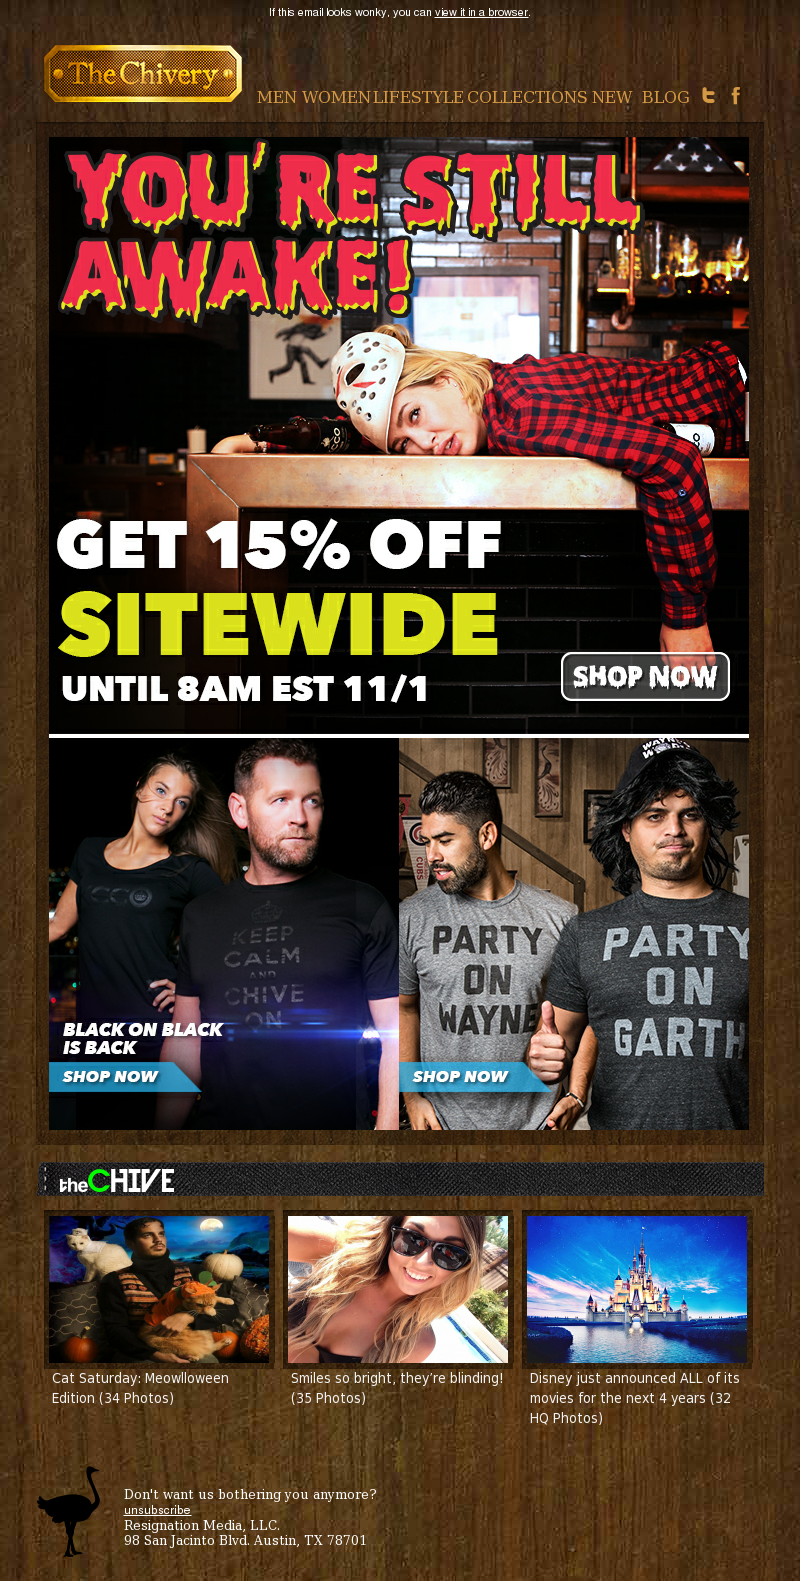 Plus, Keep Calm and KCCO Black on Black and new tees from Buy Me Brunch. If